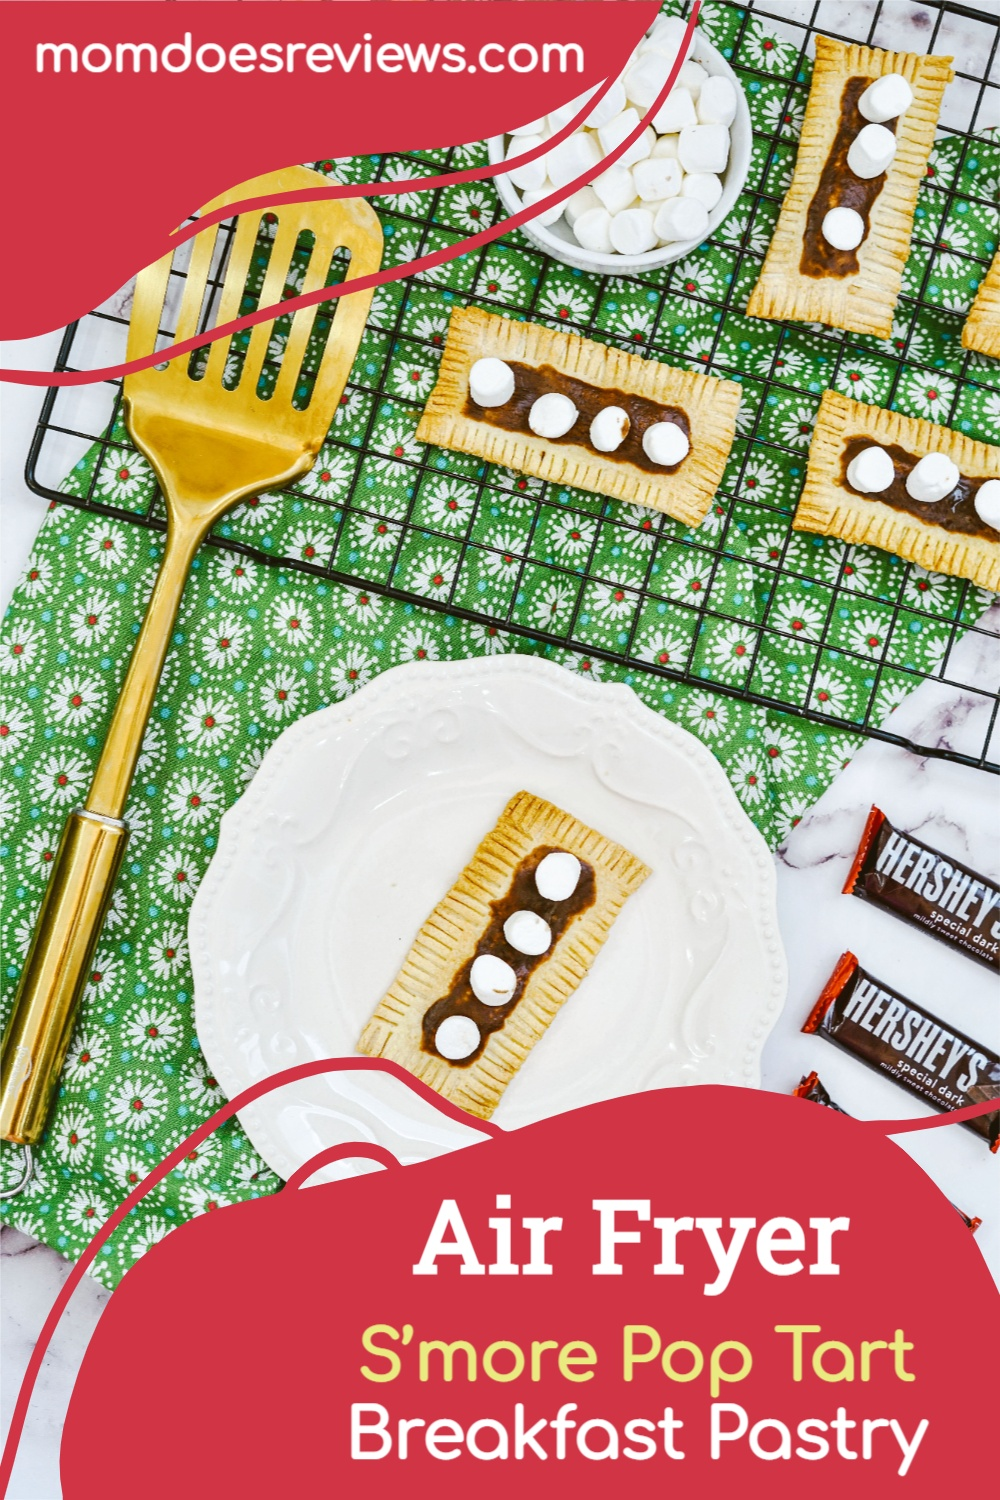 Easy Air Fryer S'more Pop Tart Breakfast Pastry #Recipe #sweets #smores